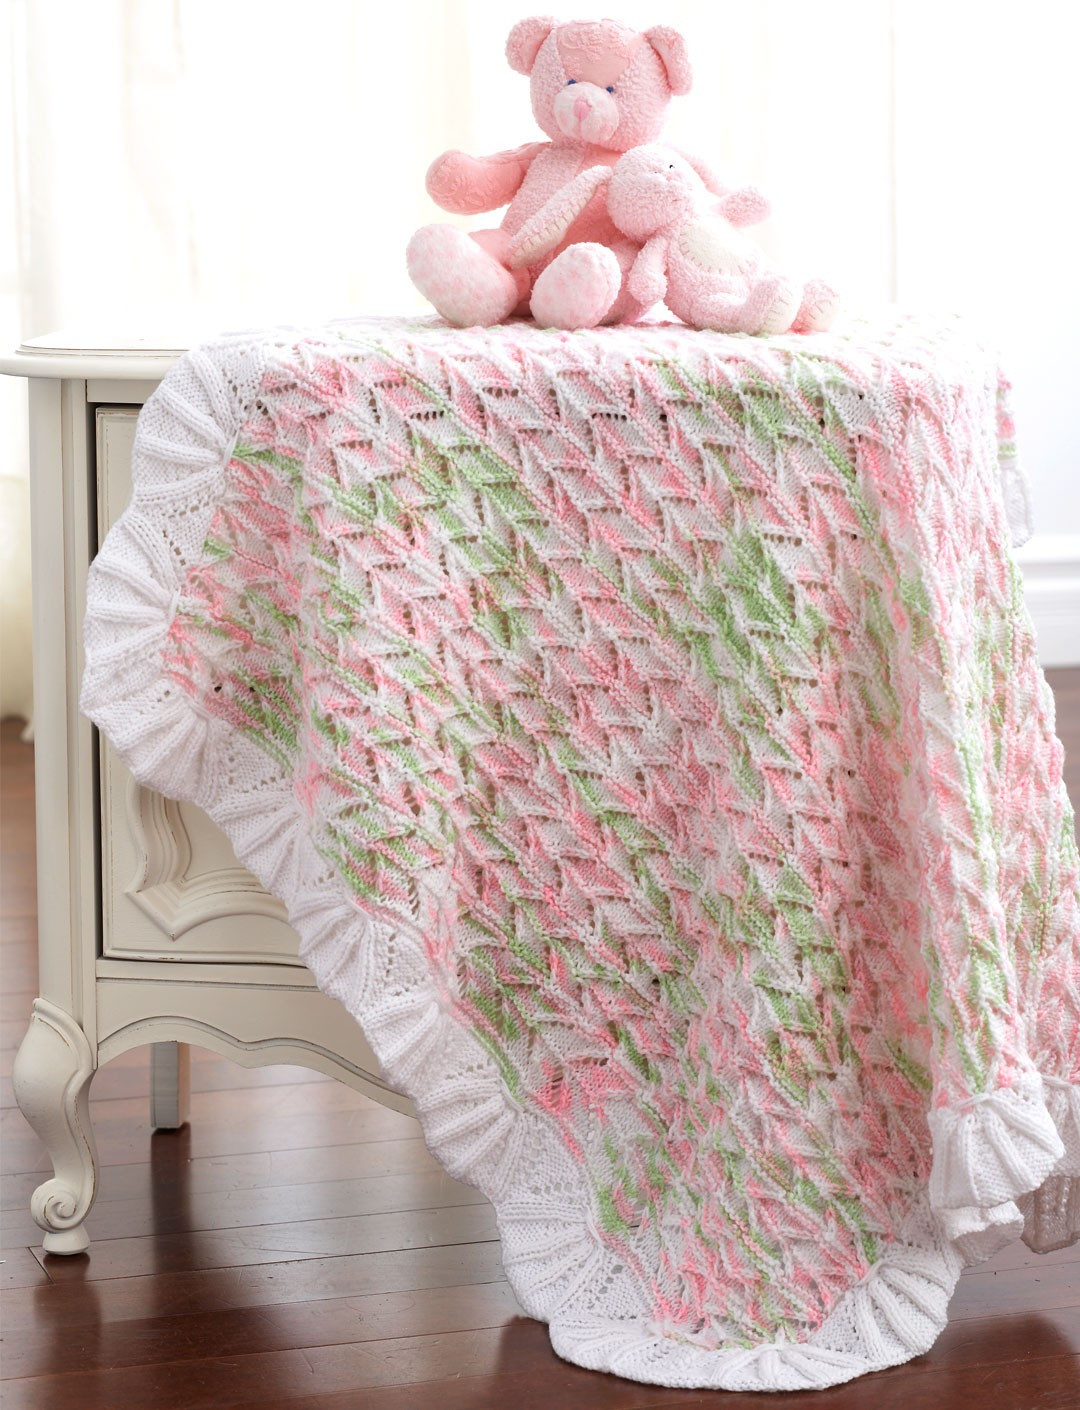 Lacy Crochet Baby Blanket Best Of A some Baby Blanket Knitting Patterns Of Top 48 Ideas Lacy Crochet Baby Blanket